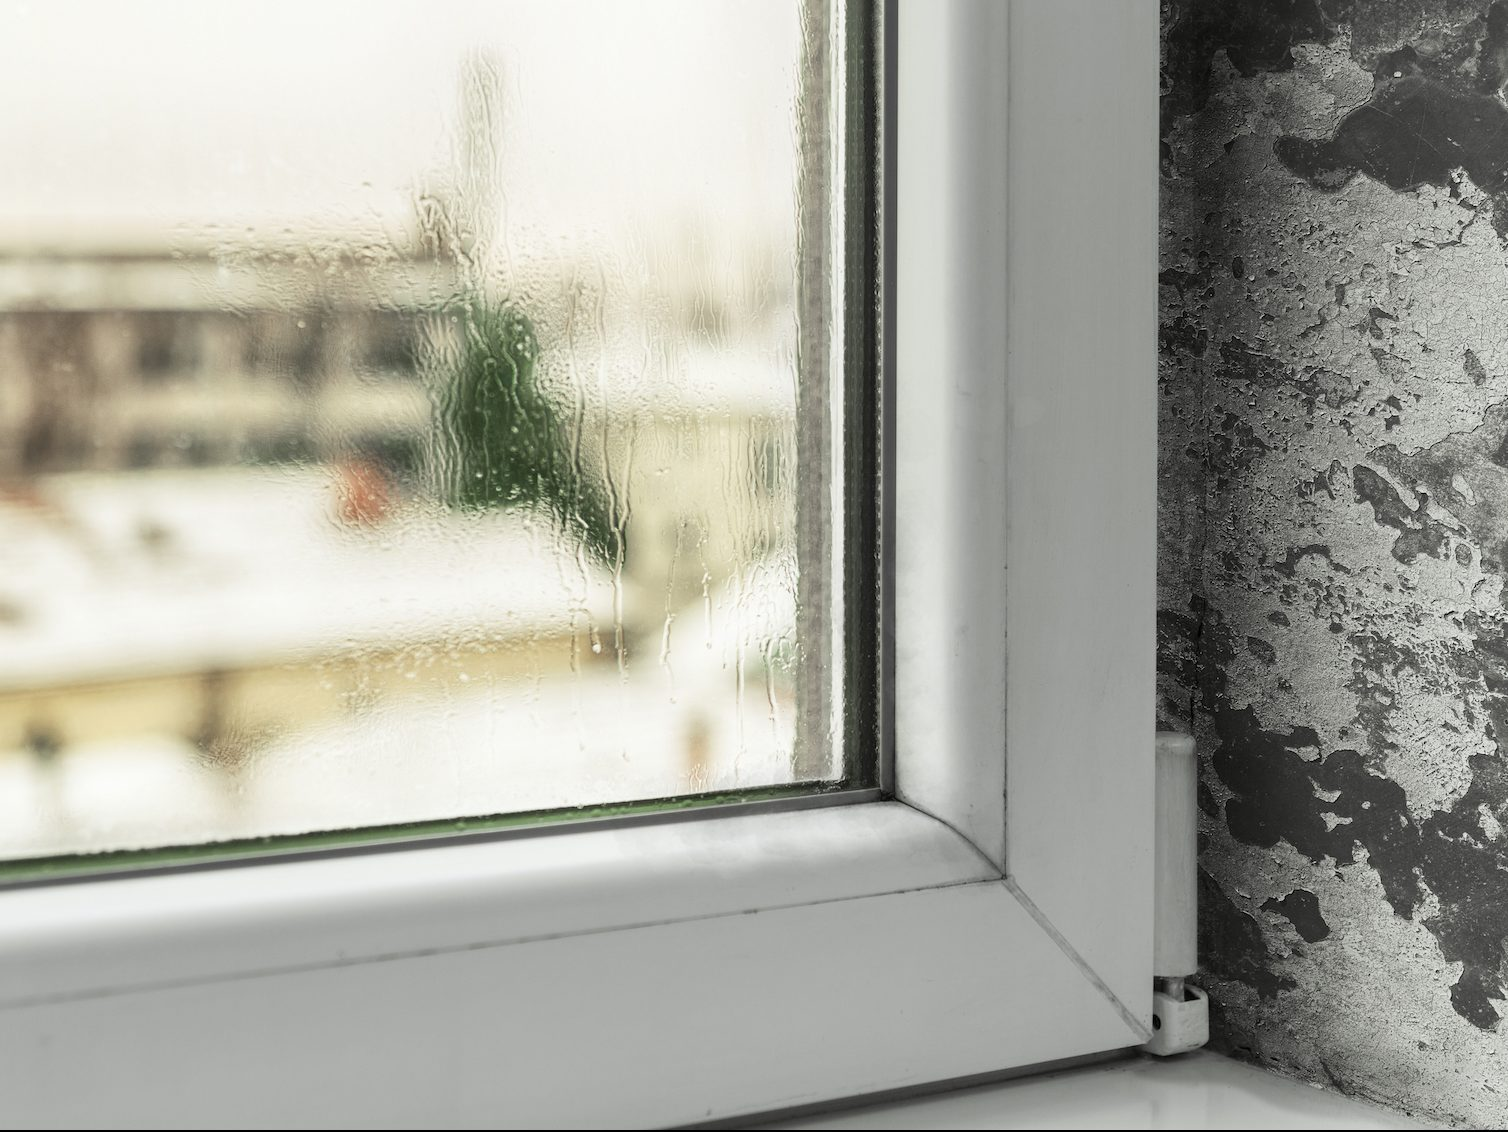 condensation on window and mold growth